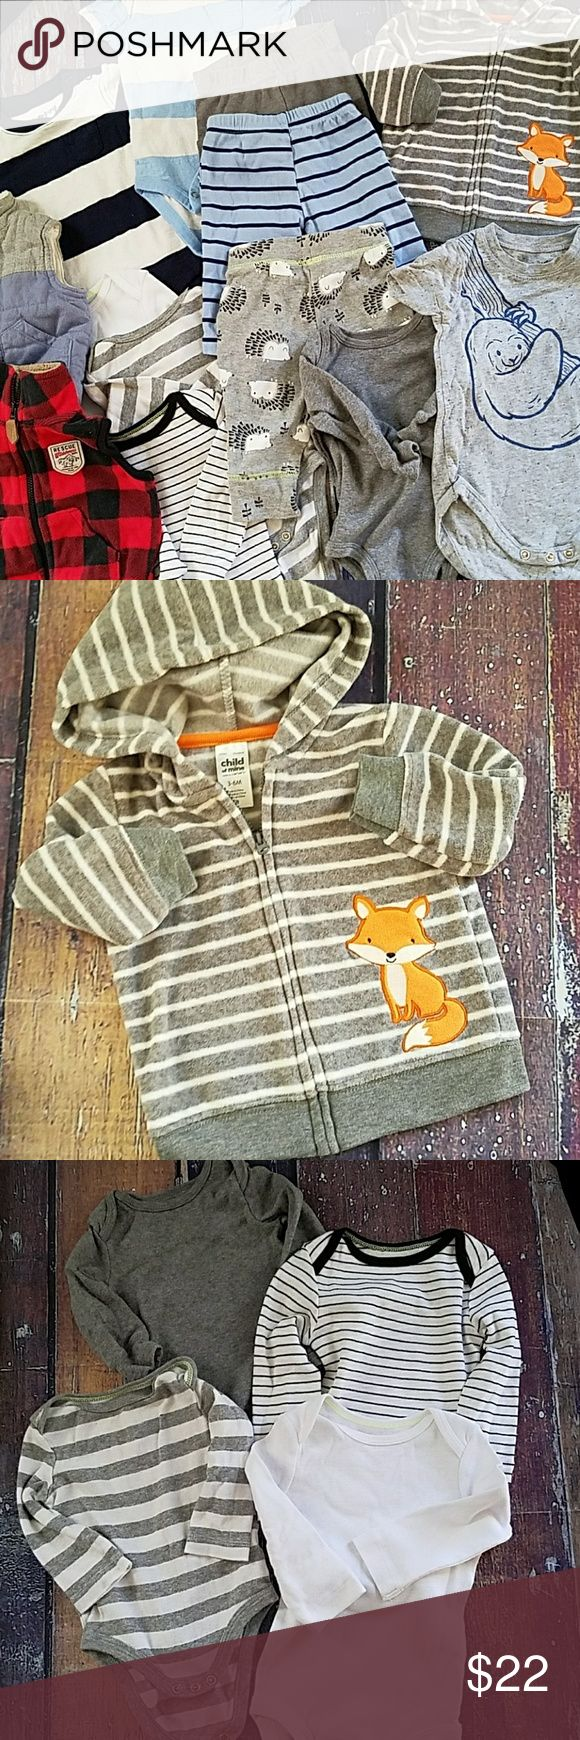 13 Pieces lot bundle fox sloth lumberjack hedgehog BABY BOY LOT All are sizes 0-3 Months or 3 Months Includes 13 Pieces Total My son outgrew before he could wear them! BRAND NEW without tags. Carter's, Jumping Bean, Cat & Jack Carter's Matching Sets